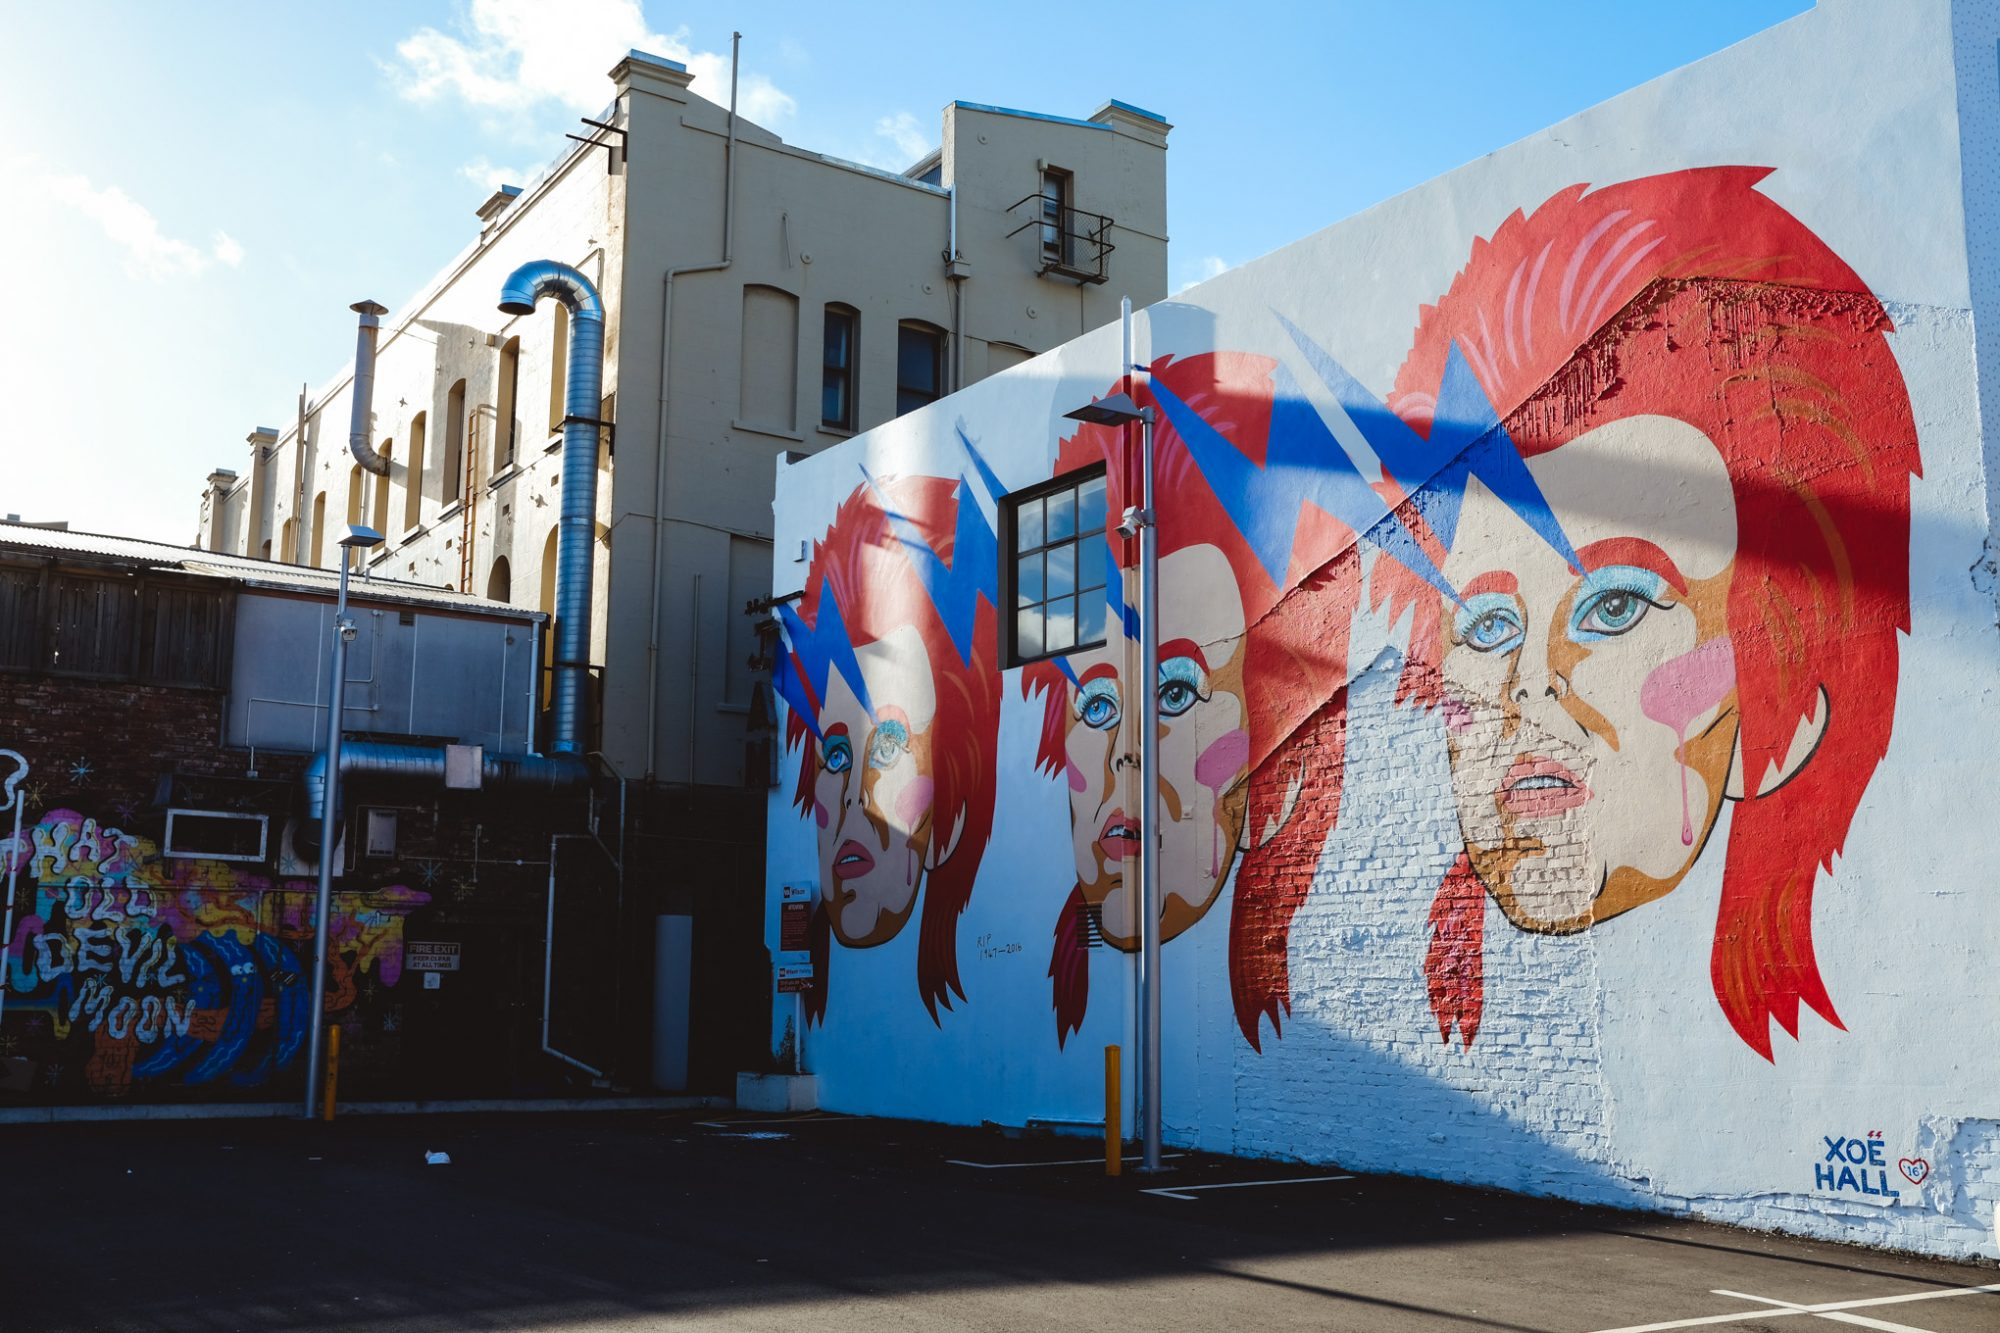 David Bowie Street Art, Wellington